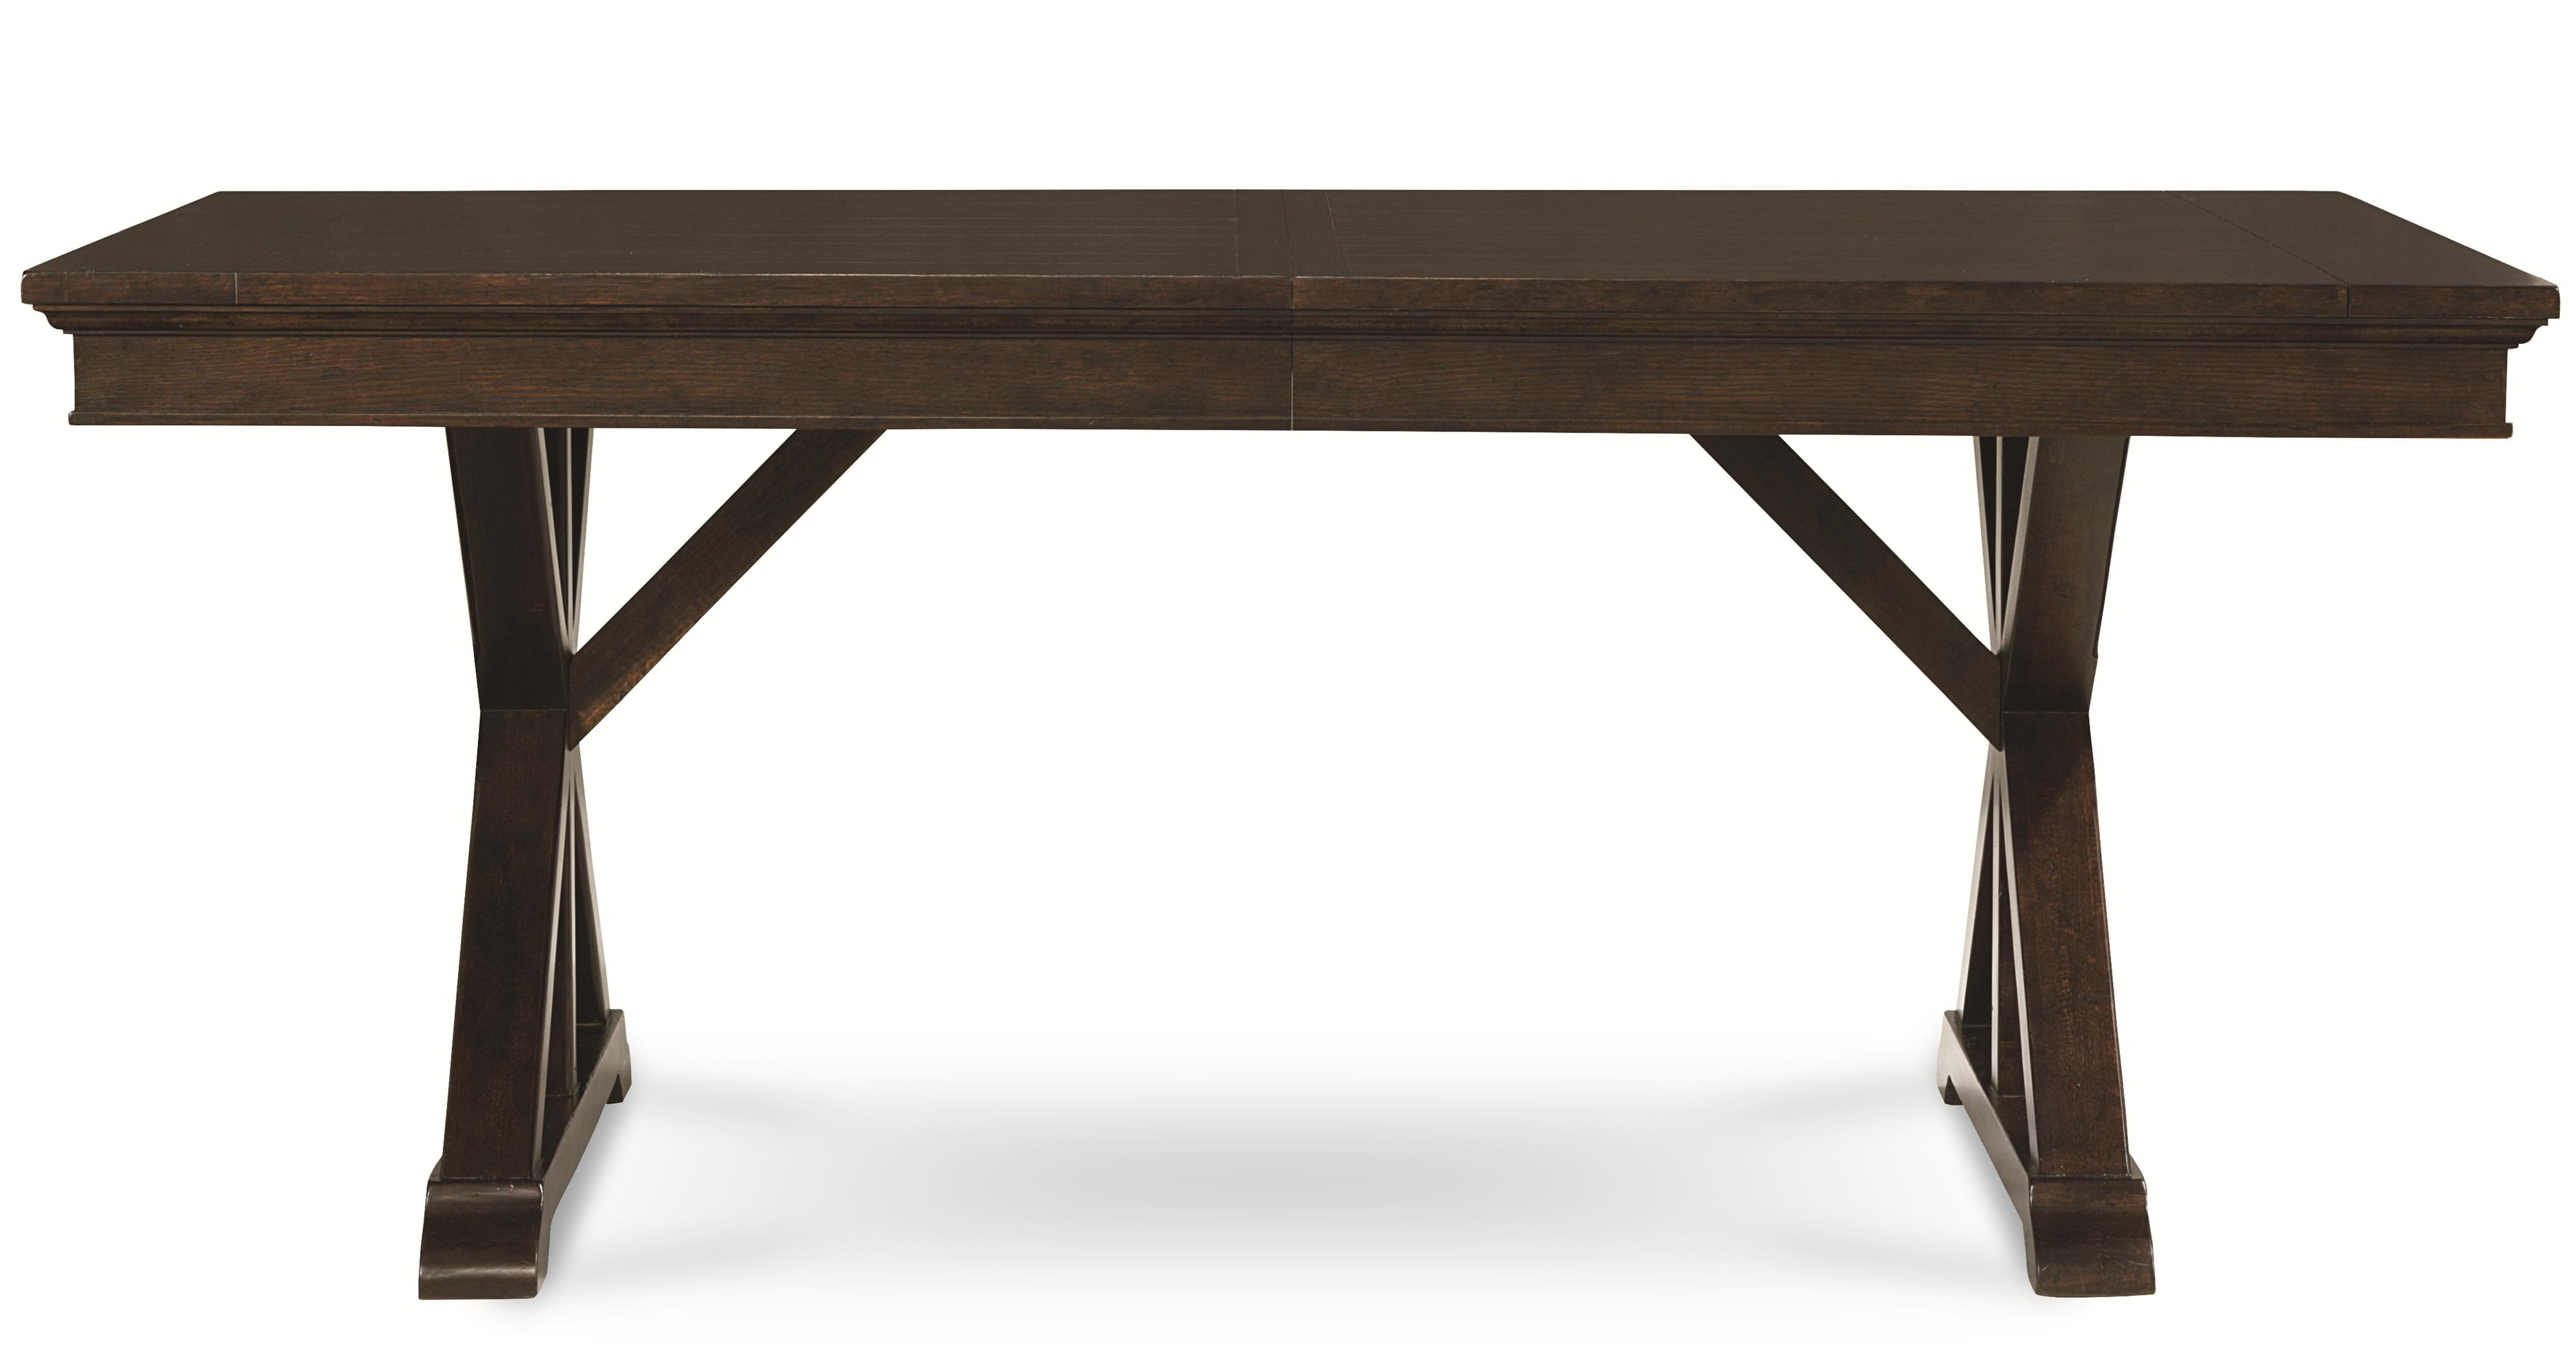 Thatcher Trestle Table by Legacy Classic at Godby Home Furnishings